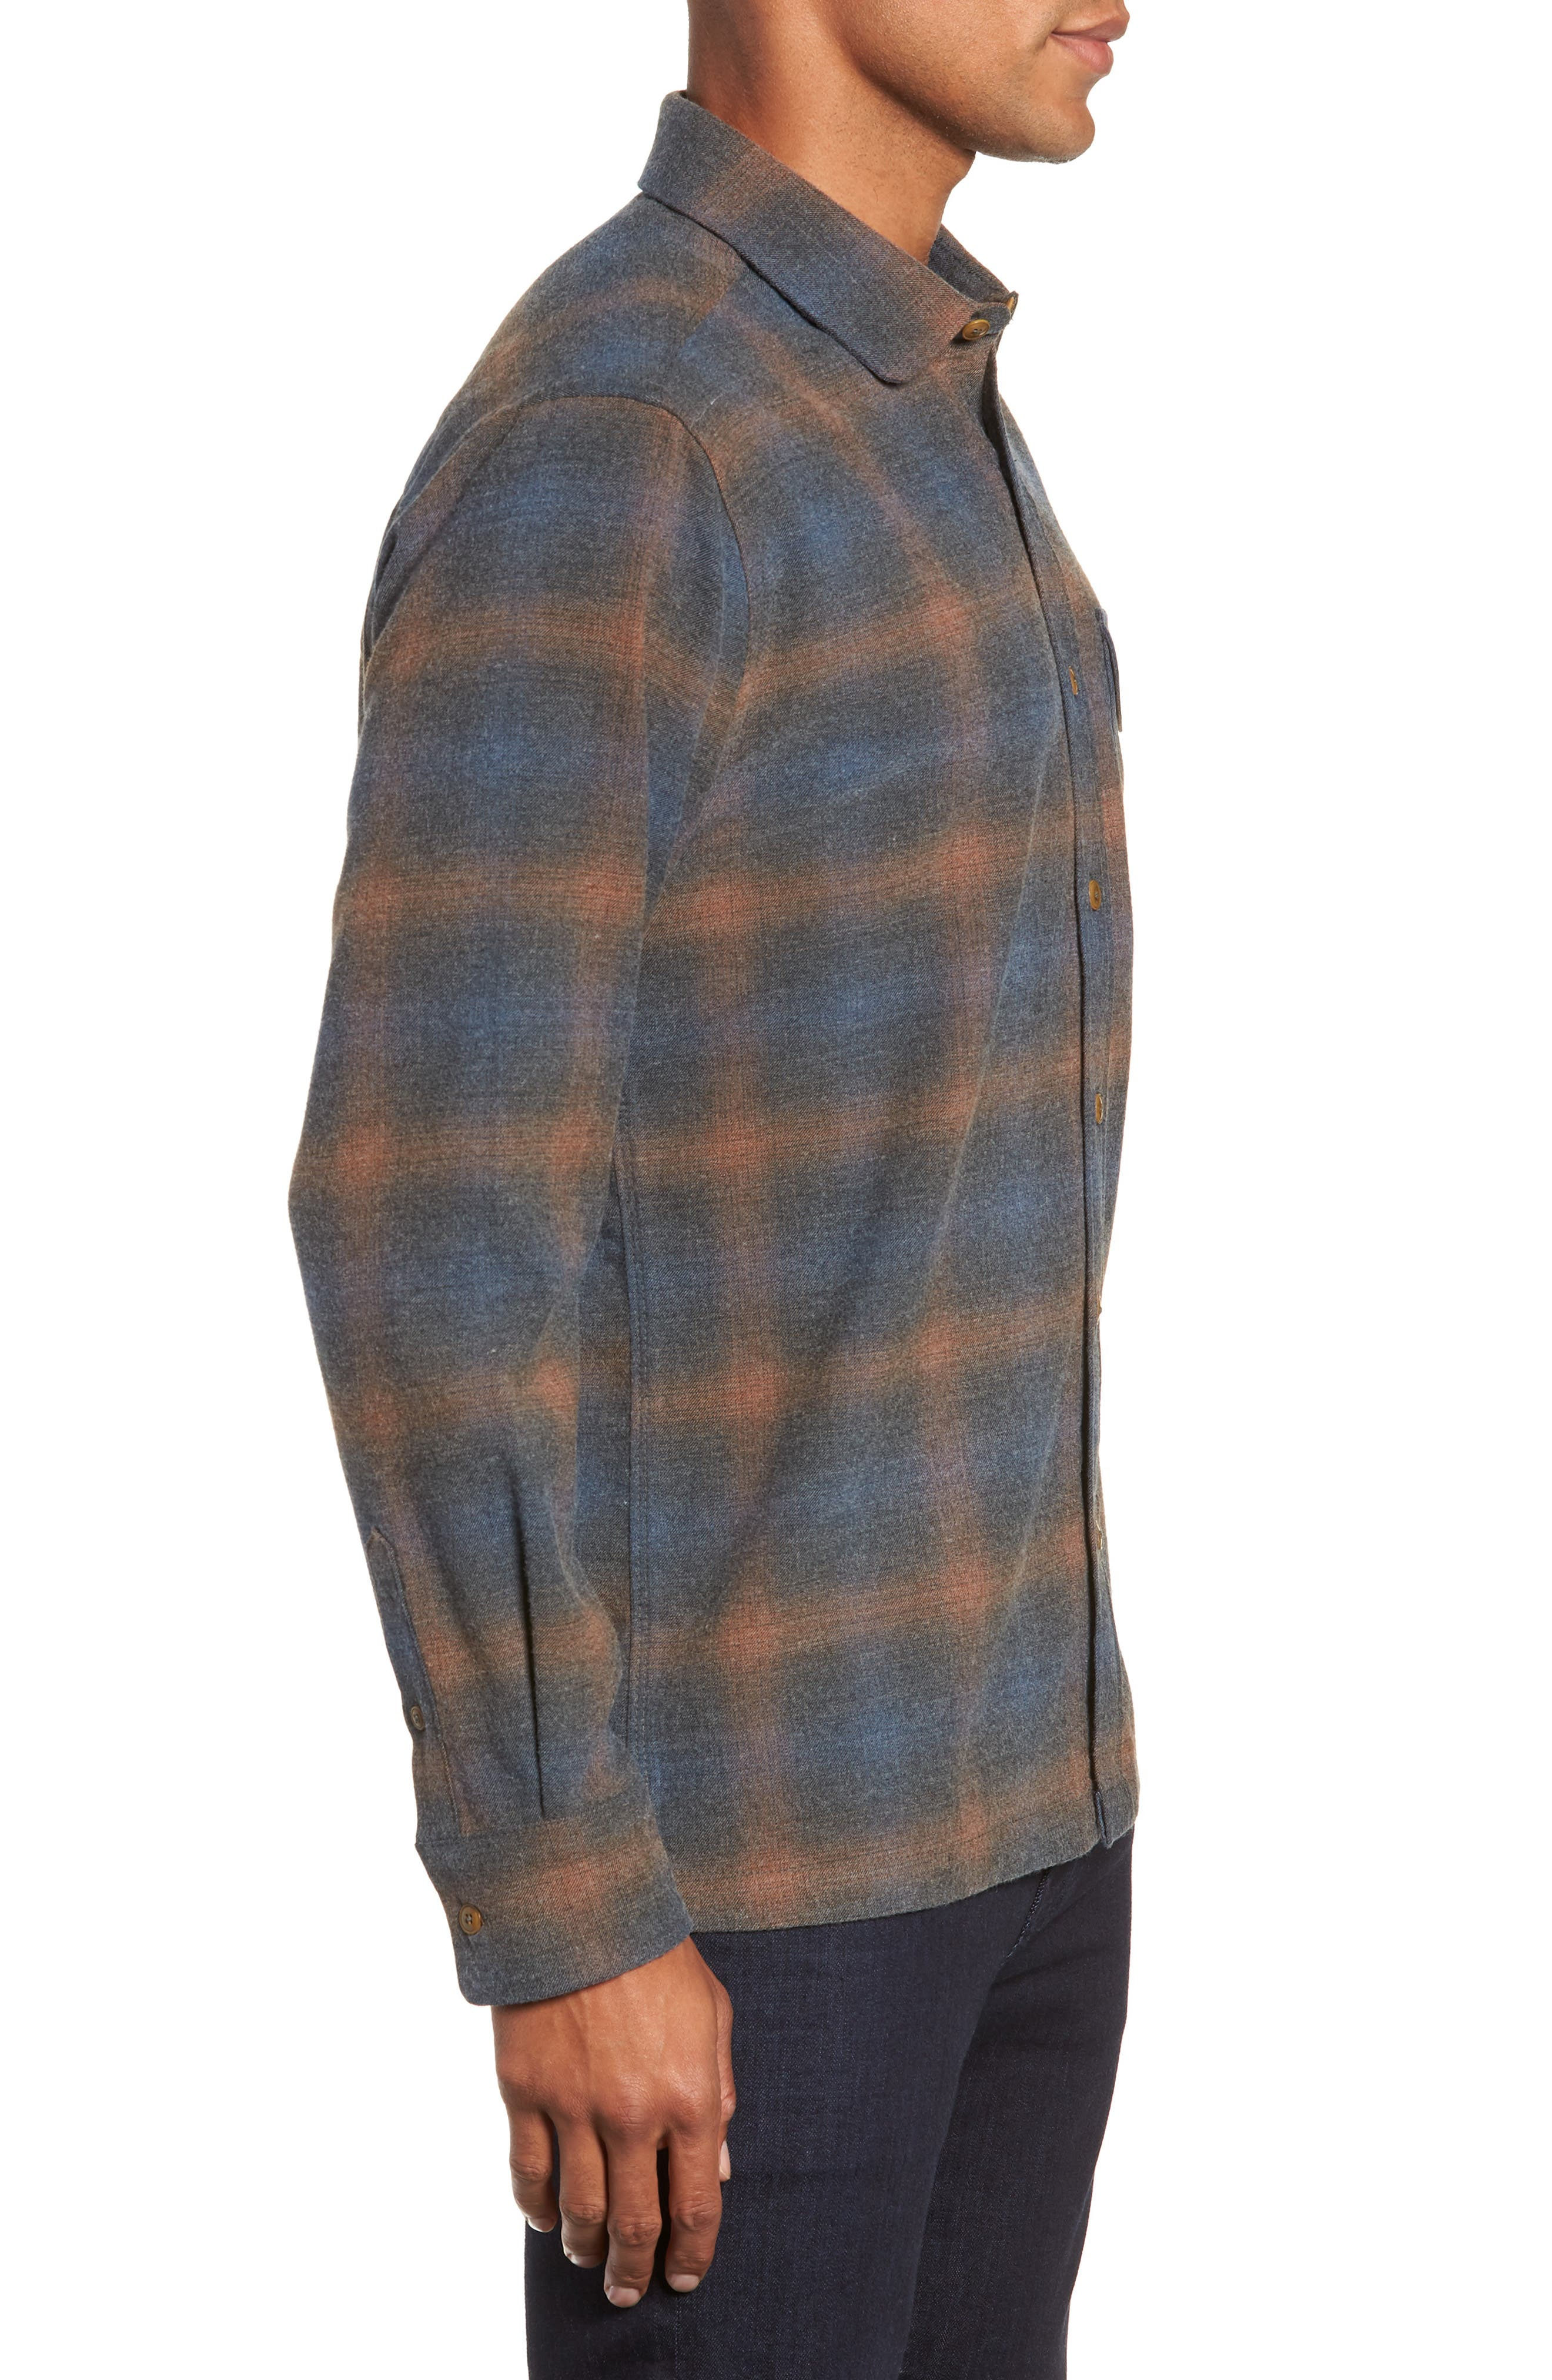 Washburn Regular Fit Plaid Stretch Brushed Flannel Shirt,                             Alternate thumbnail 4, color,                             BLUE WING TEAL HEATHER